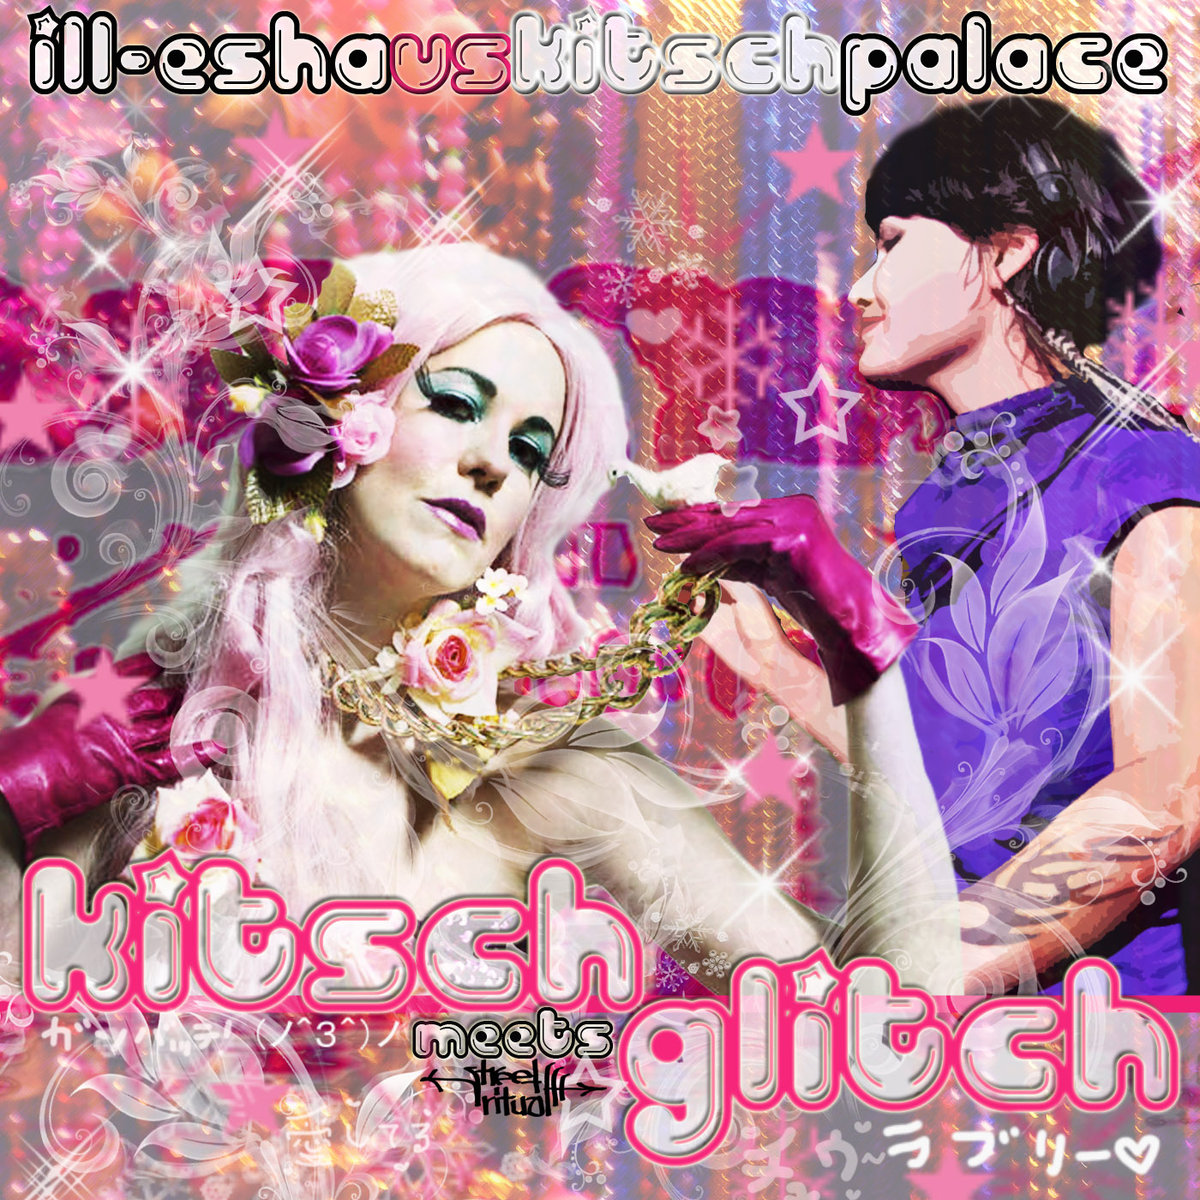 ill-esha vs. Kitsch Palace - Mata Hari @ 'Kitsch Meets Glitch' album (bass, electronic)